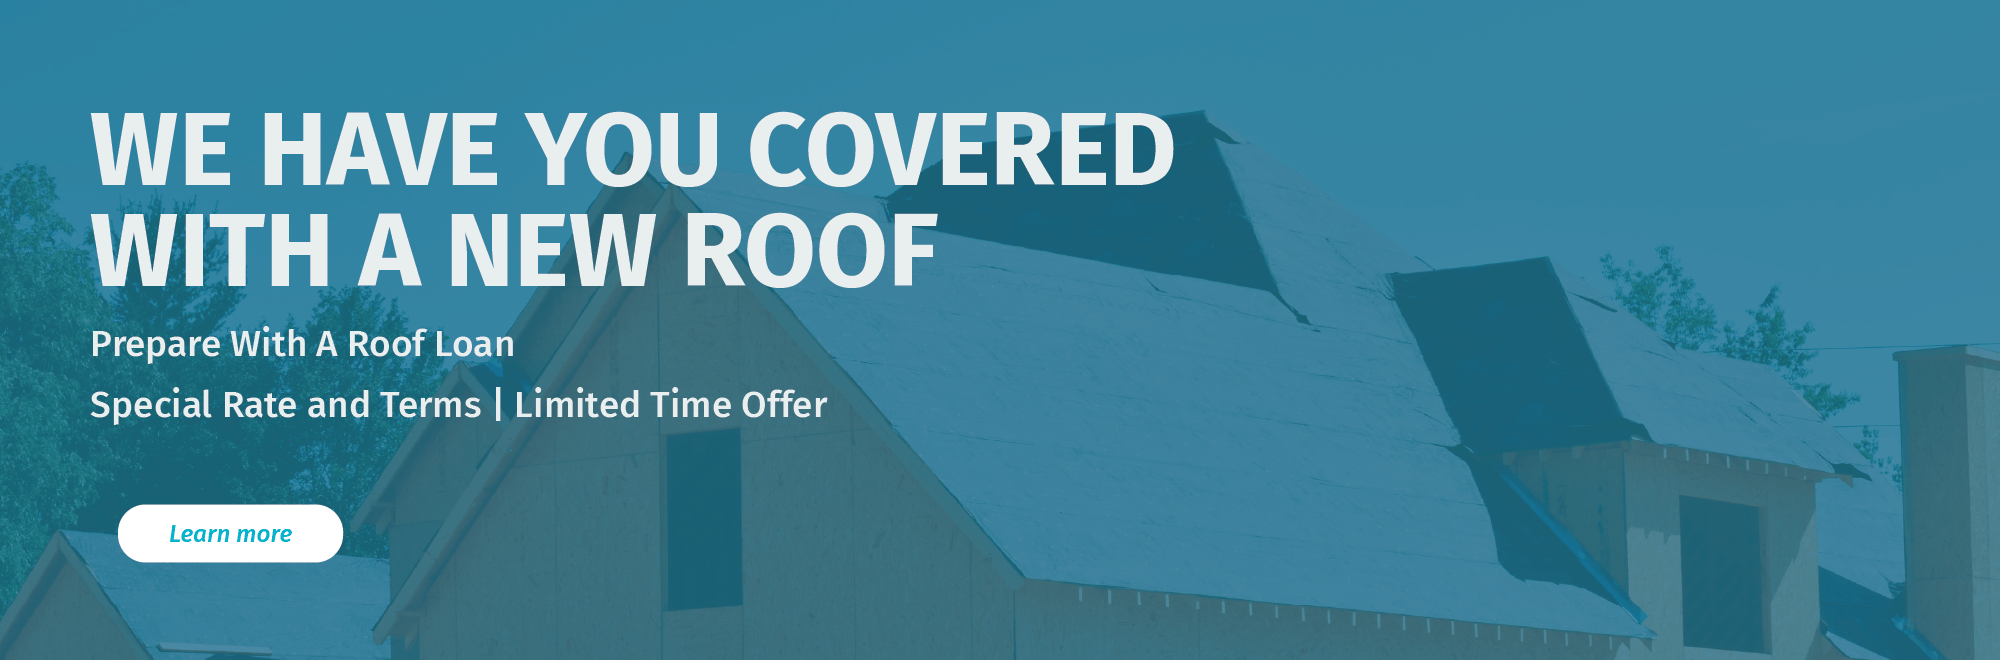 We have you covered with a new roof. Prepare with a roof loan. Special rate and terms. Limited time offer.